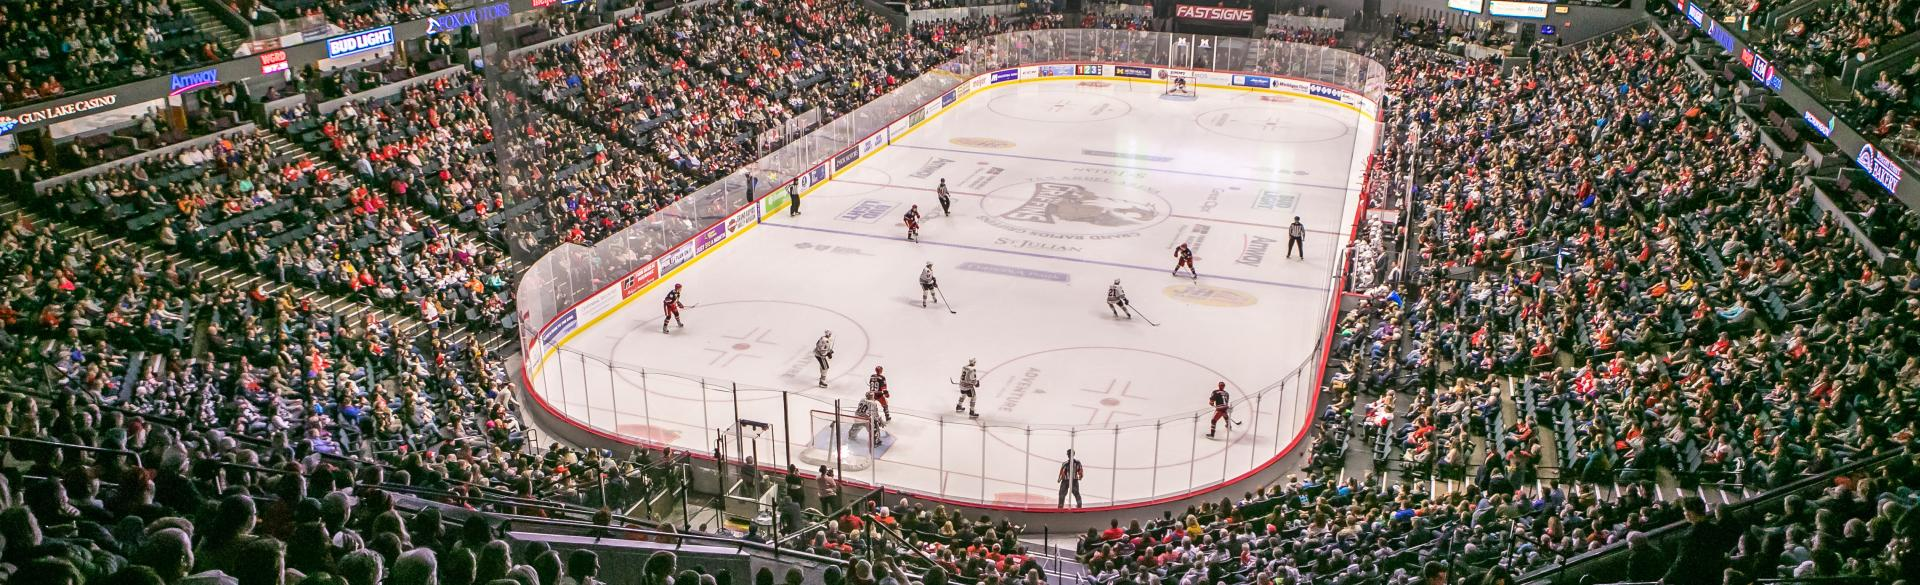 Inside a Griffins Hockey game at Van Andel Arena, 2018.